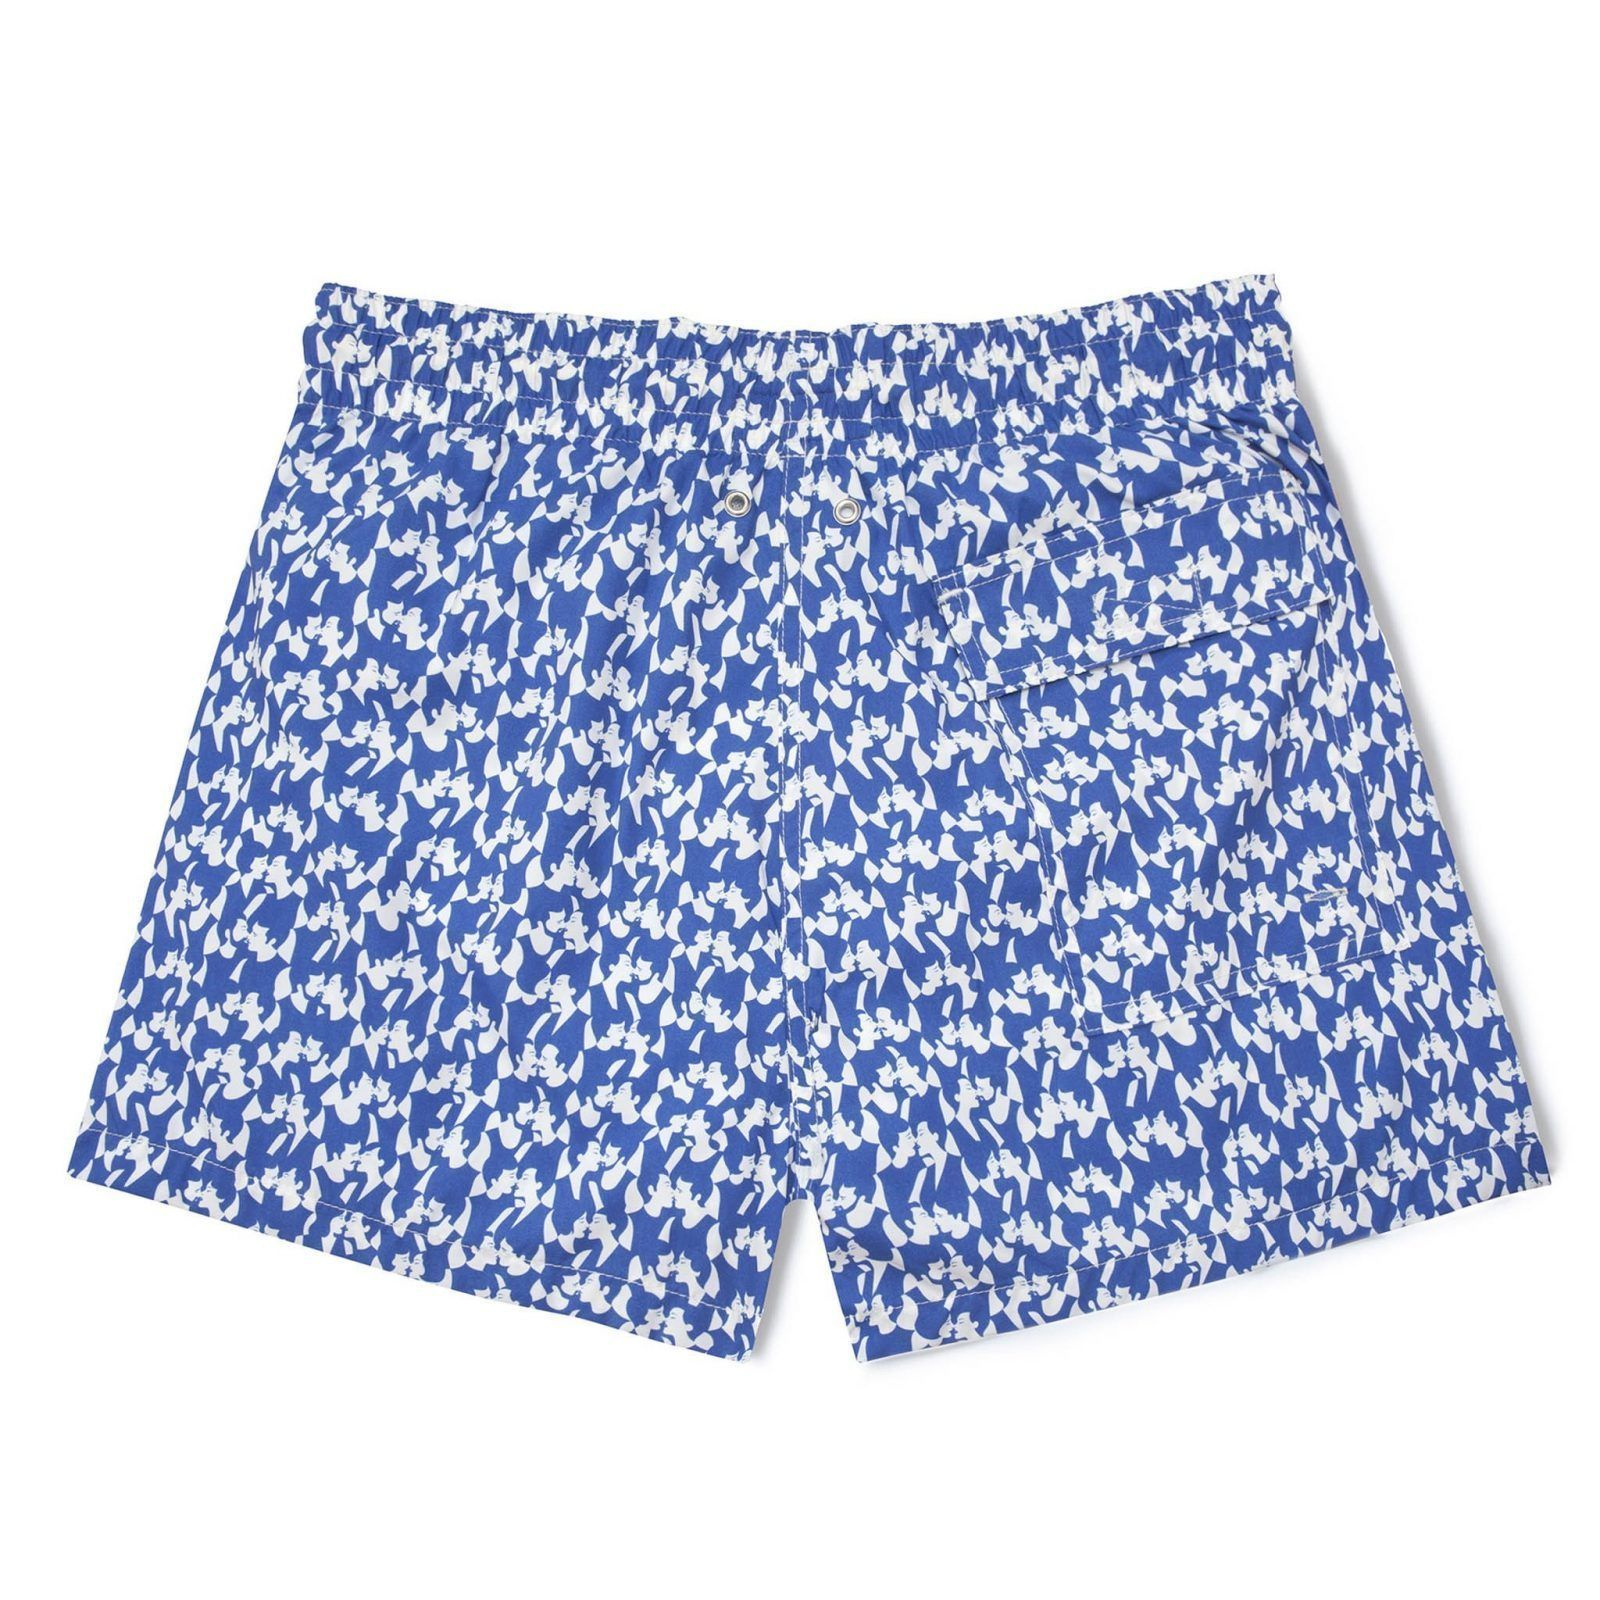 Short-Length Swim Shorts-622